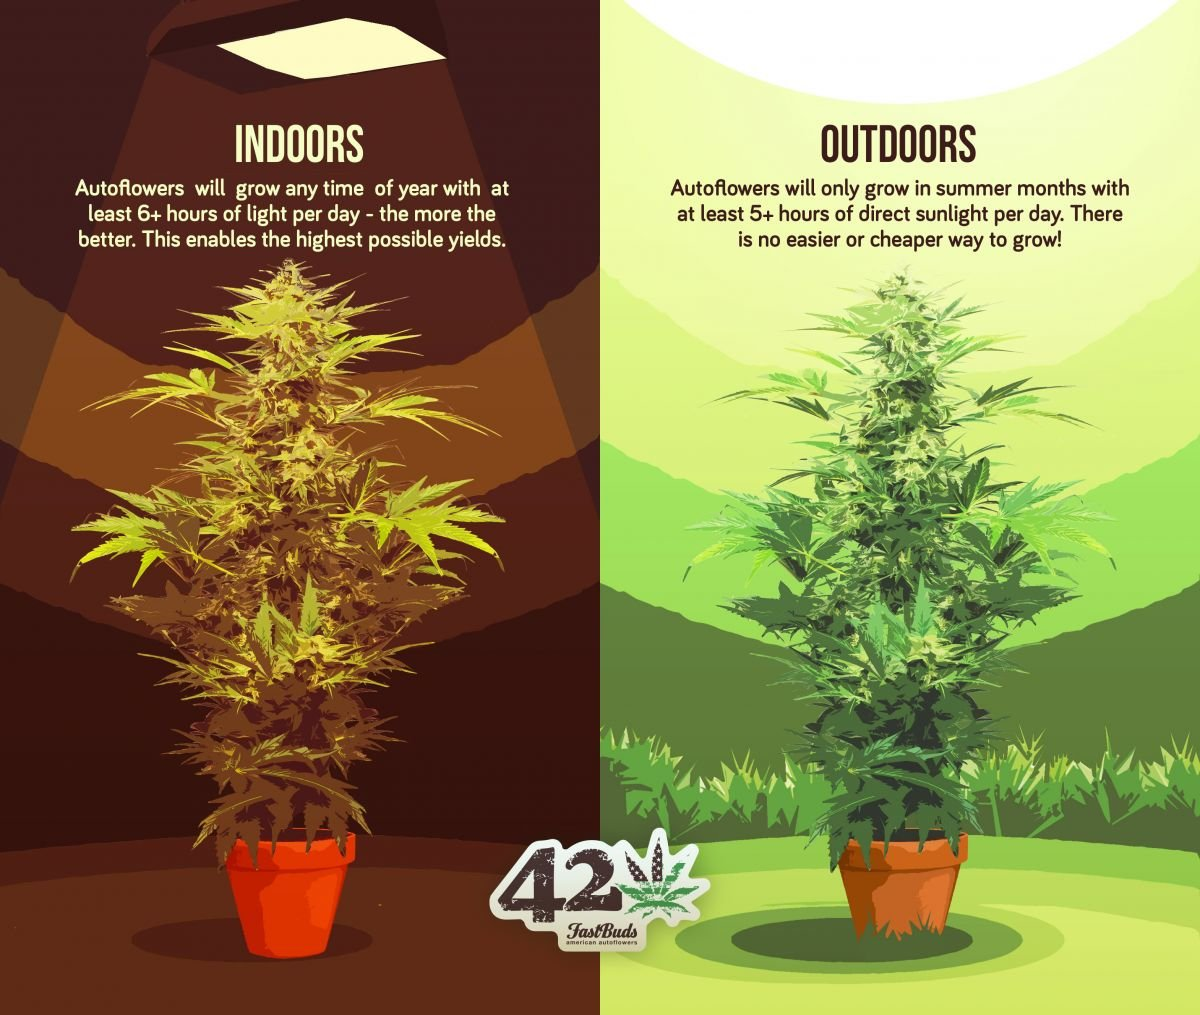 Difference between growing autoflowers indoors and outdoors described